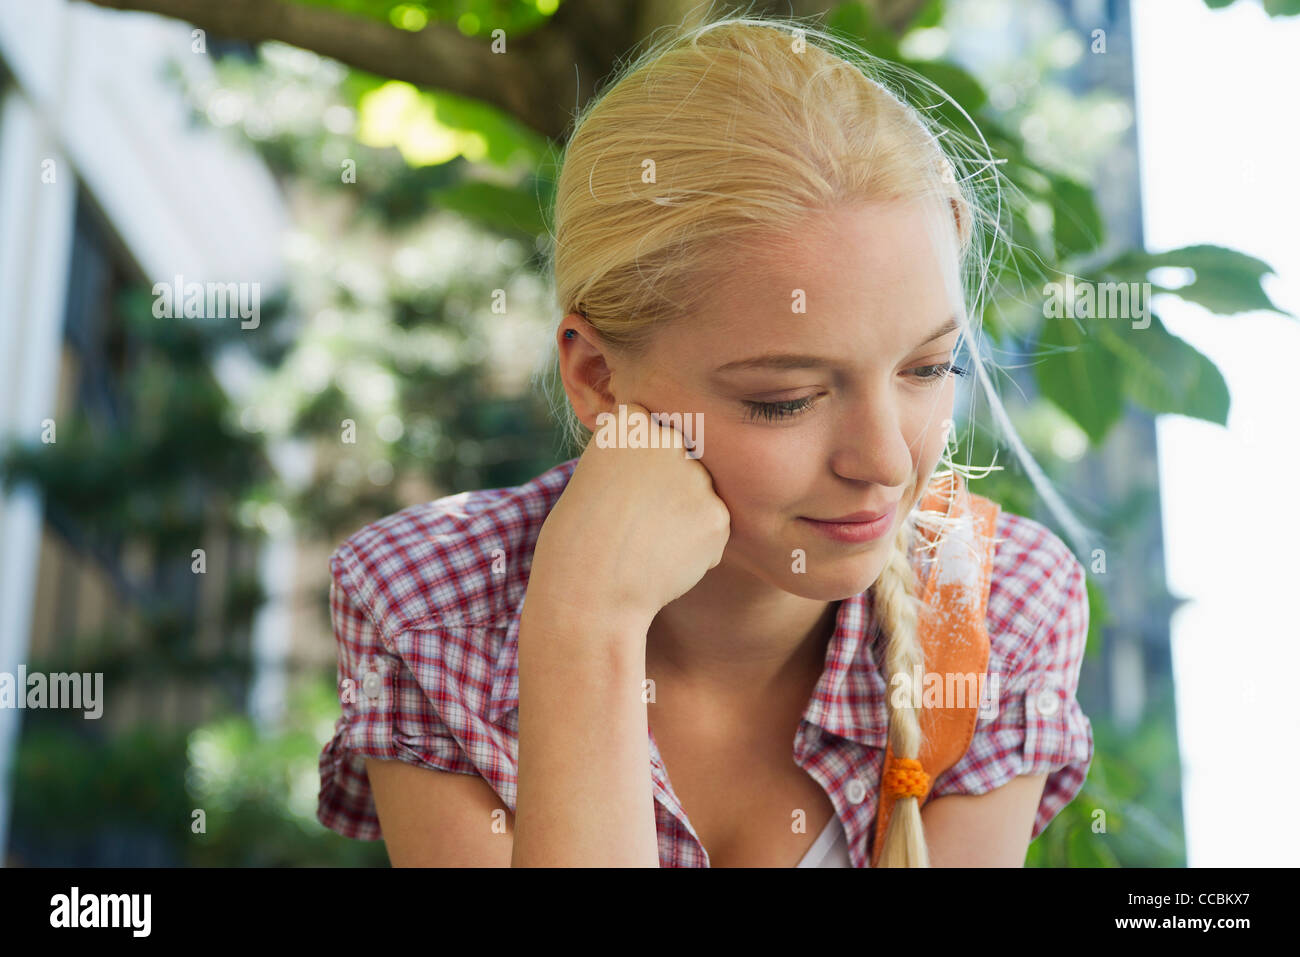 Young woman looking down in thought, portrait - Stock Image